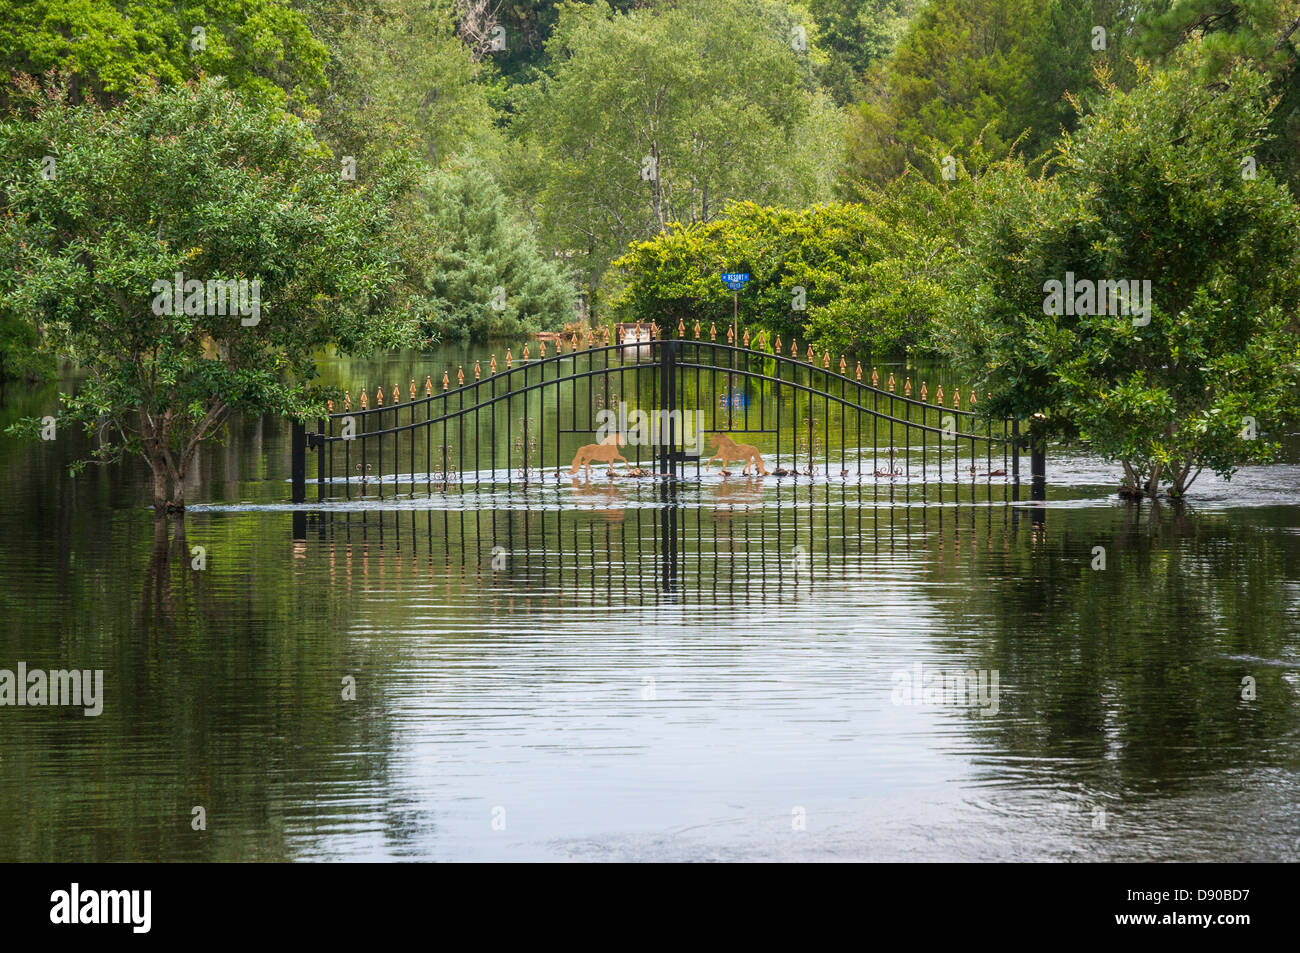 Flooding after Tropical Storm Debby hit North Central Florida 6-12. - Stock Image